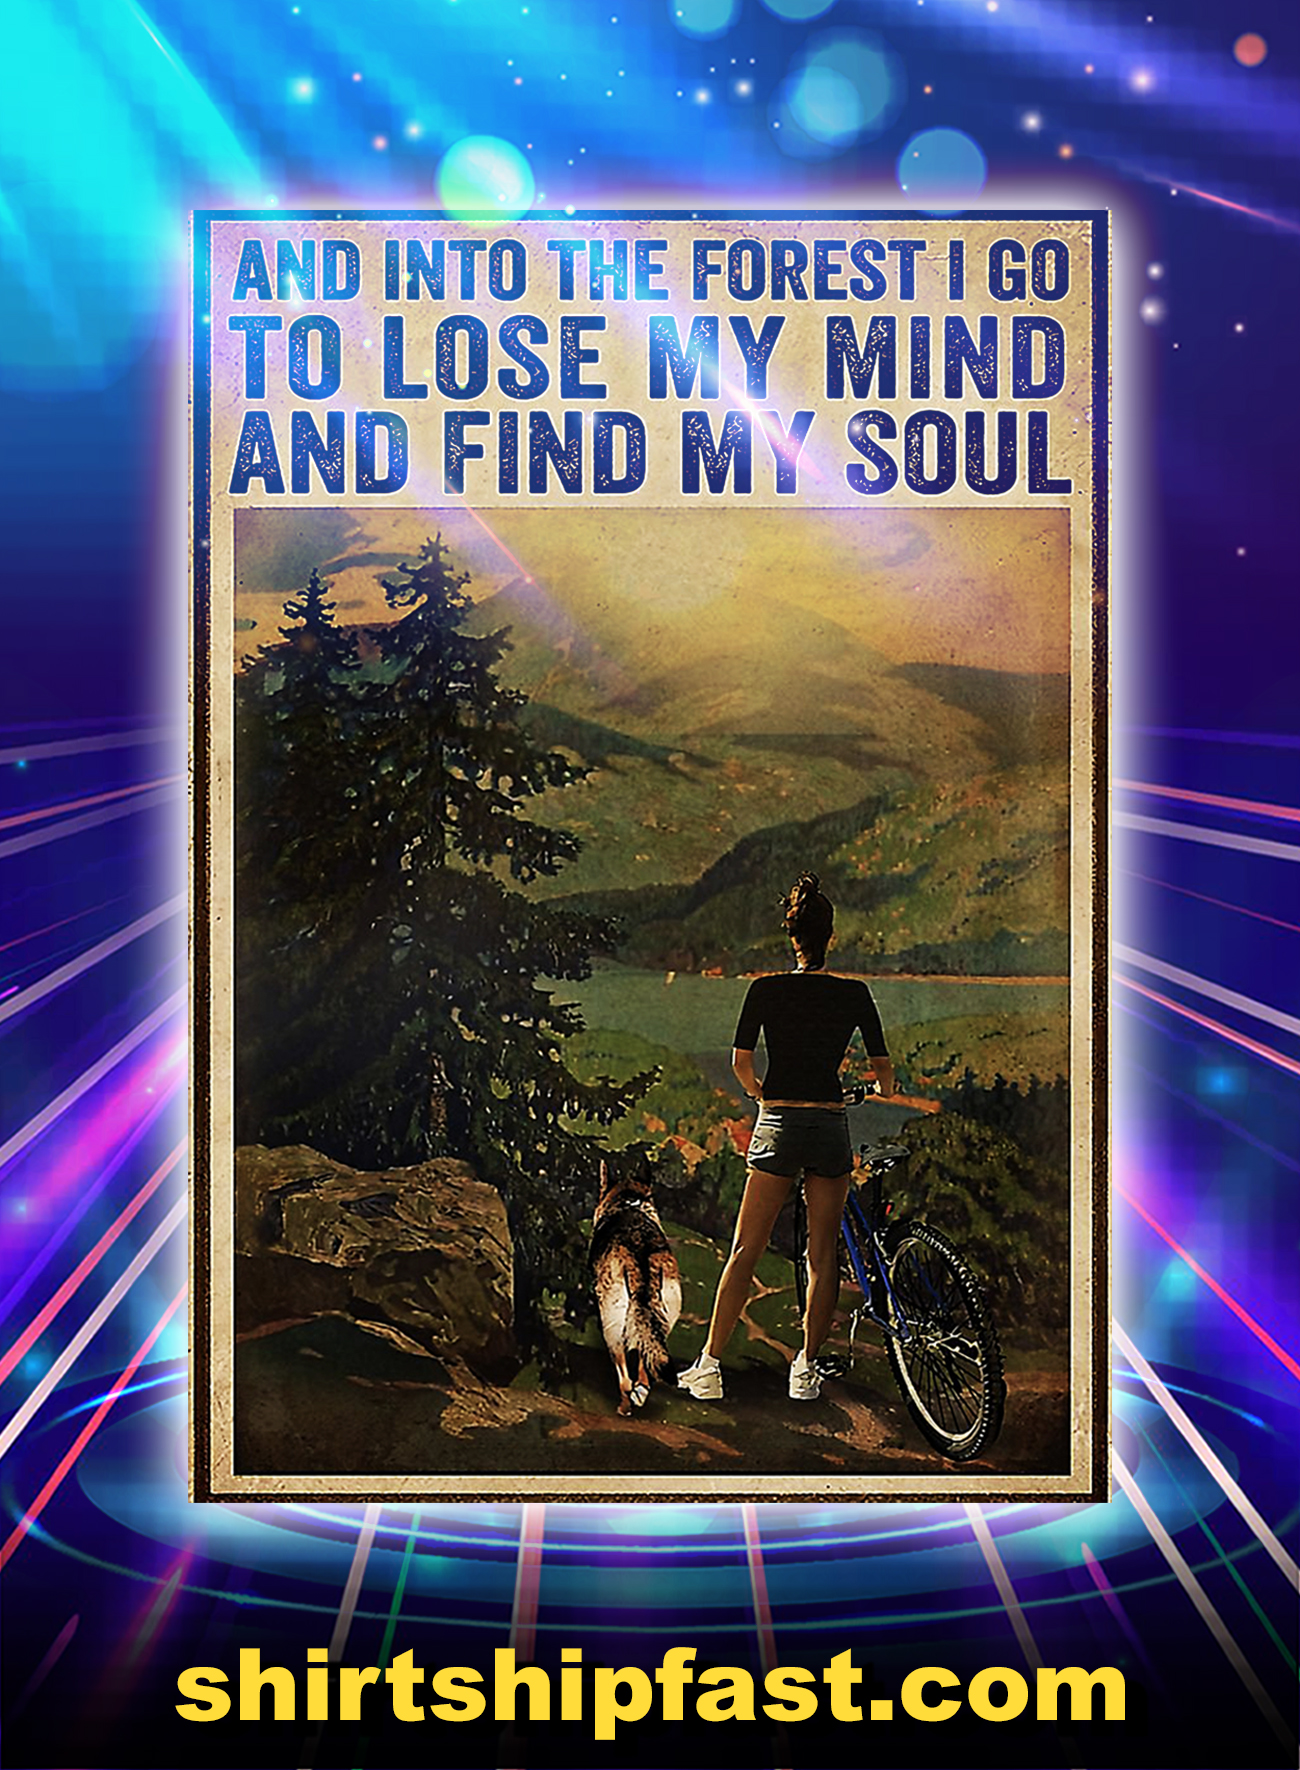 Cyling and into the forest i go to lose my mind and find my soul poster - A1